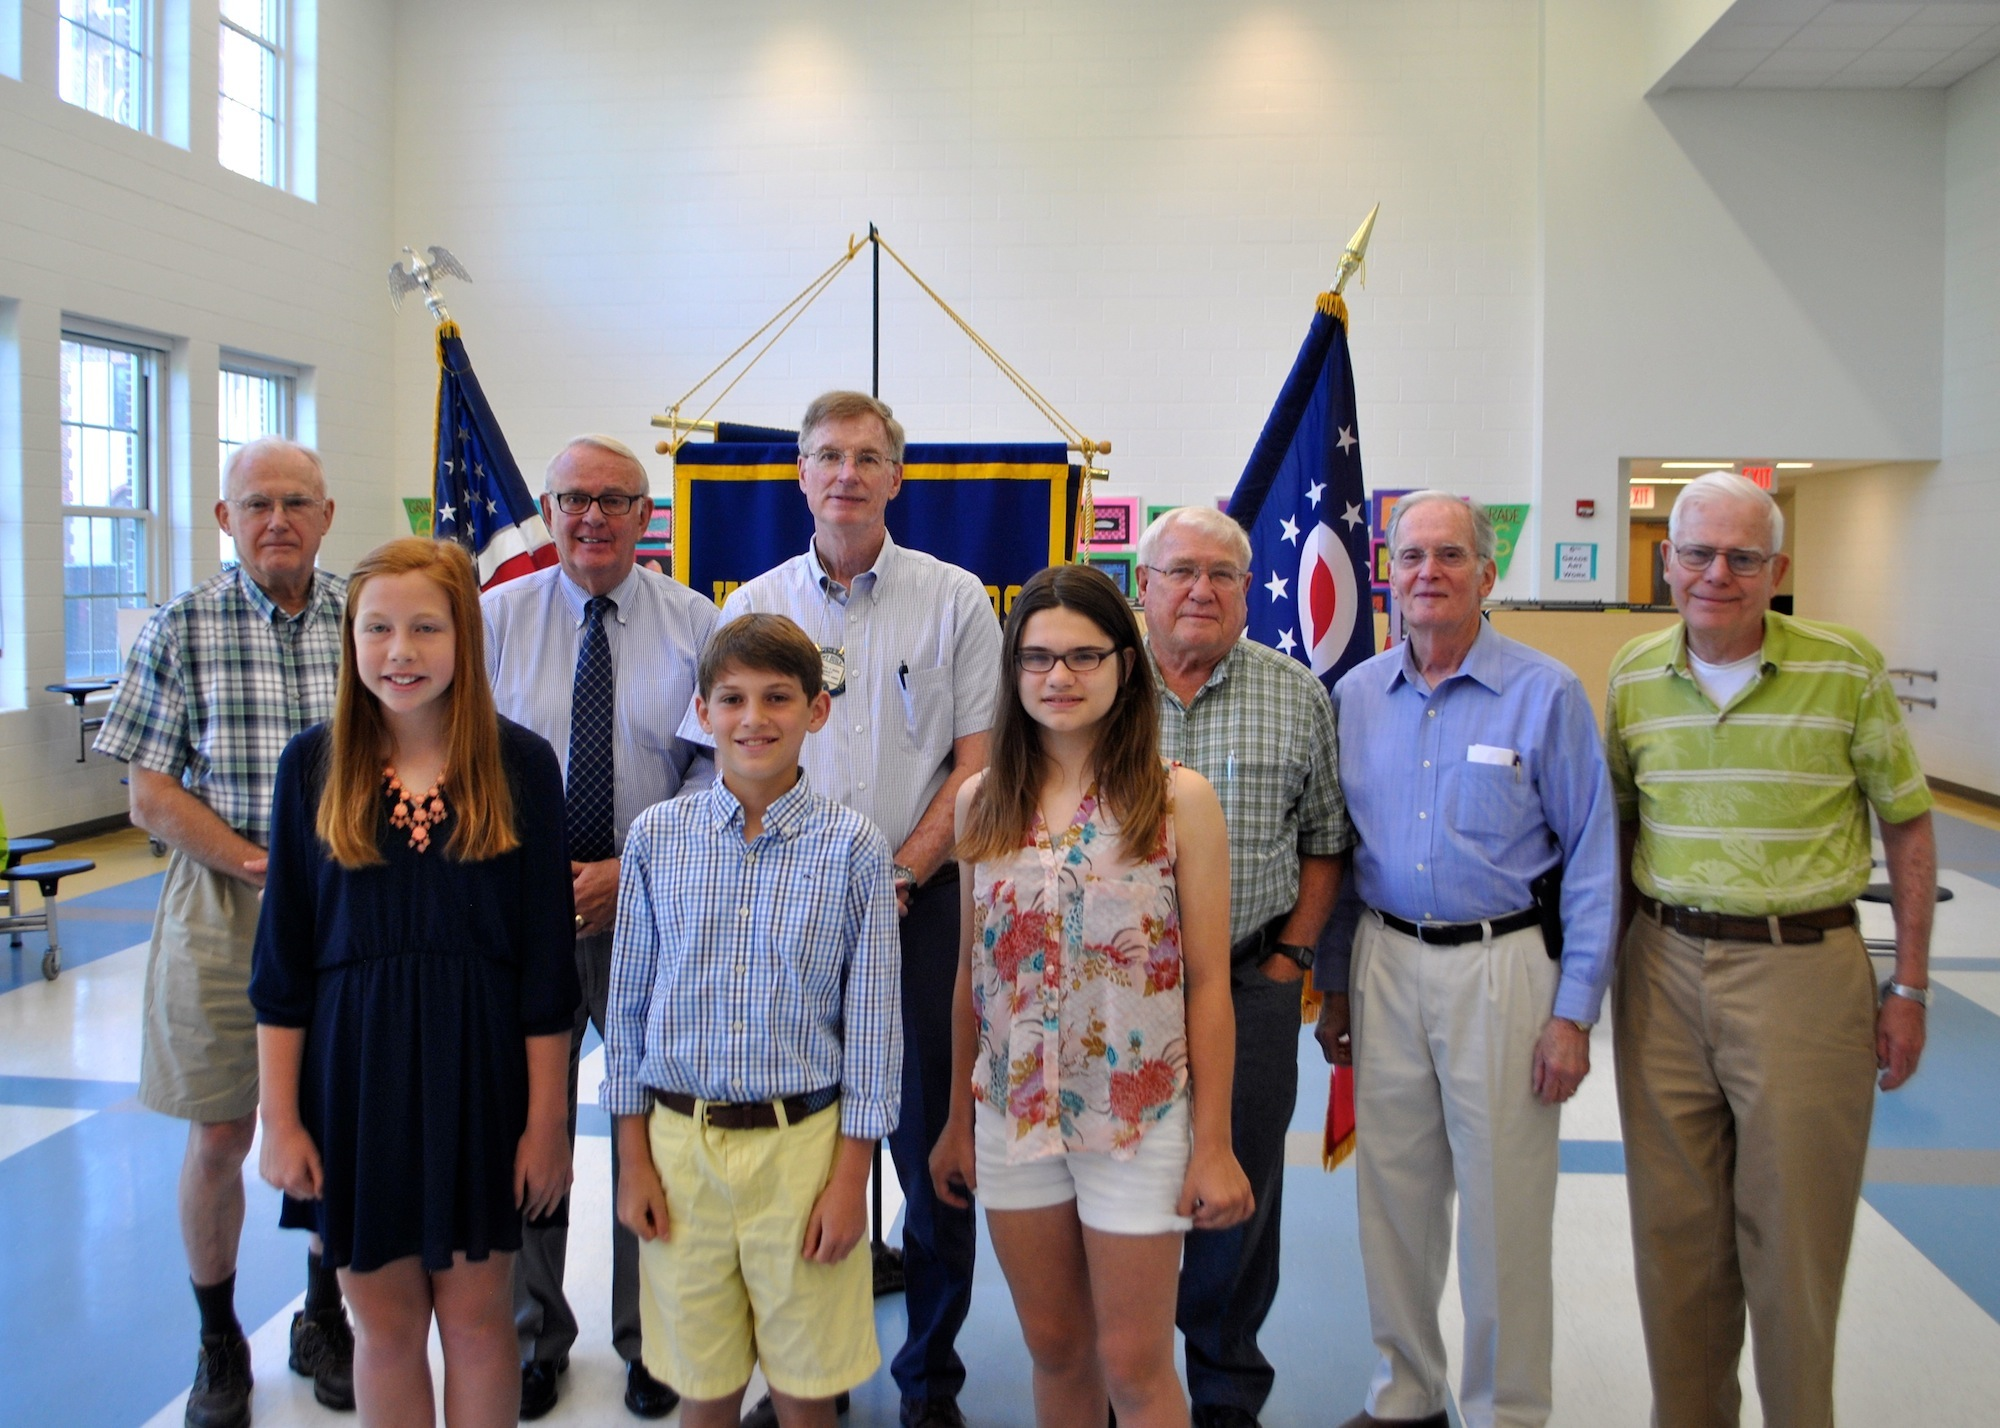 memorial day essay winners mariemont com the essay winners stand the kiwanis members who have served our country left to